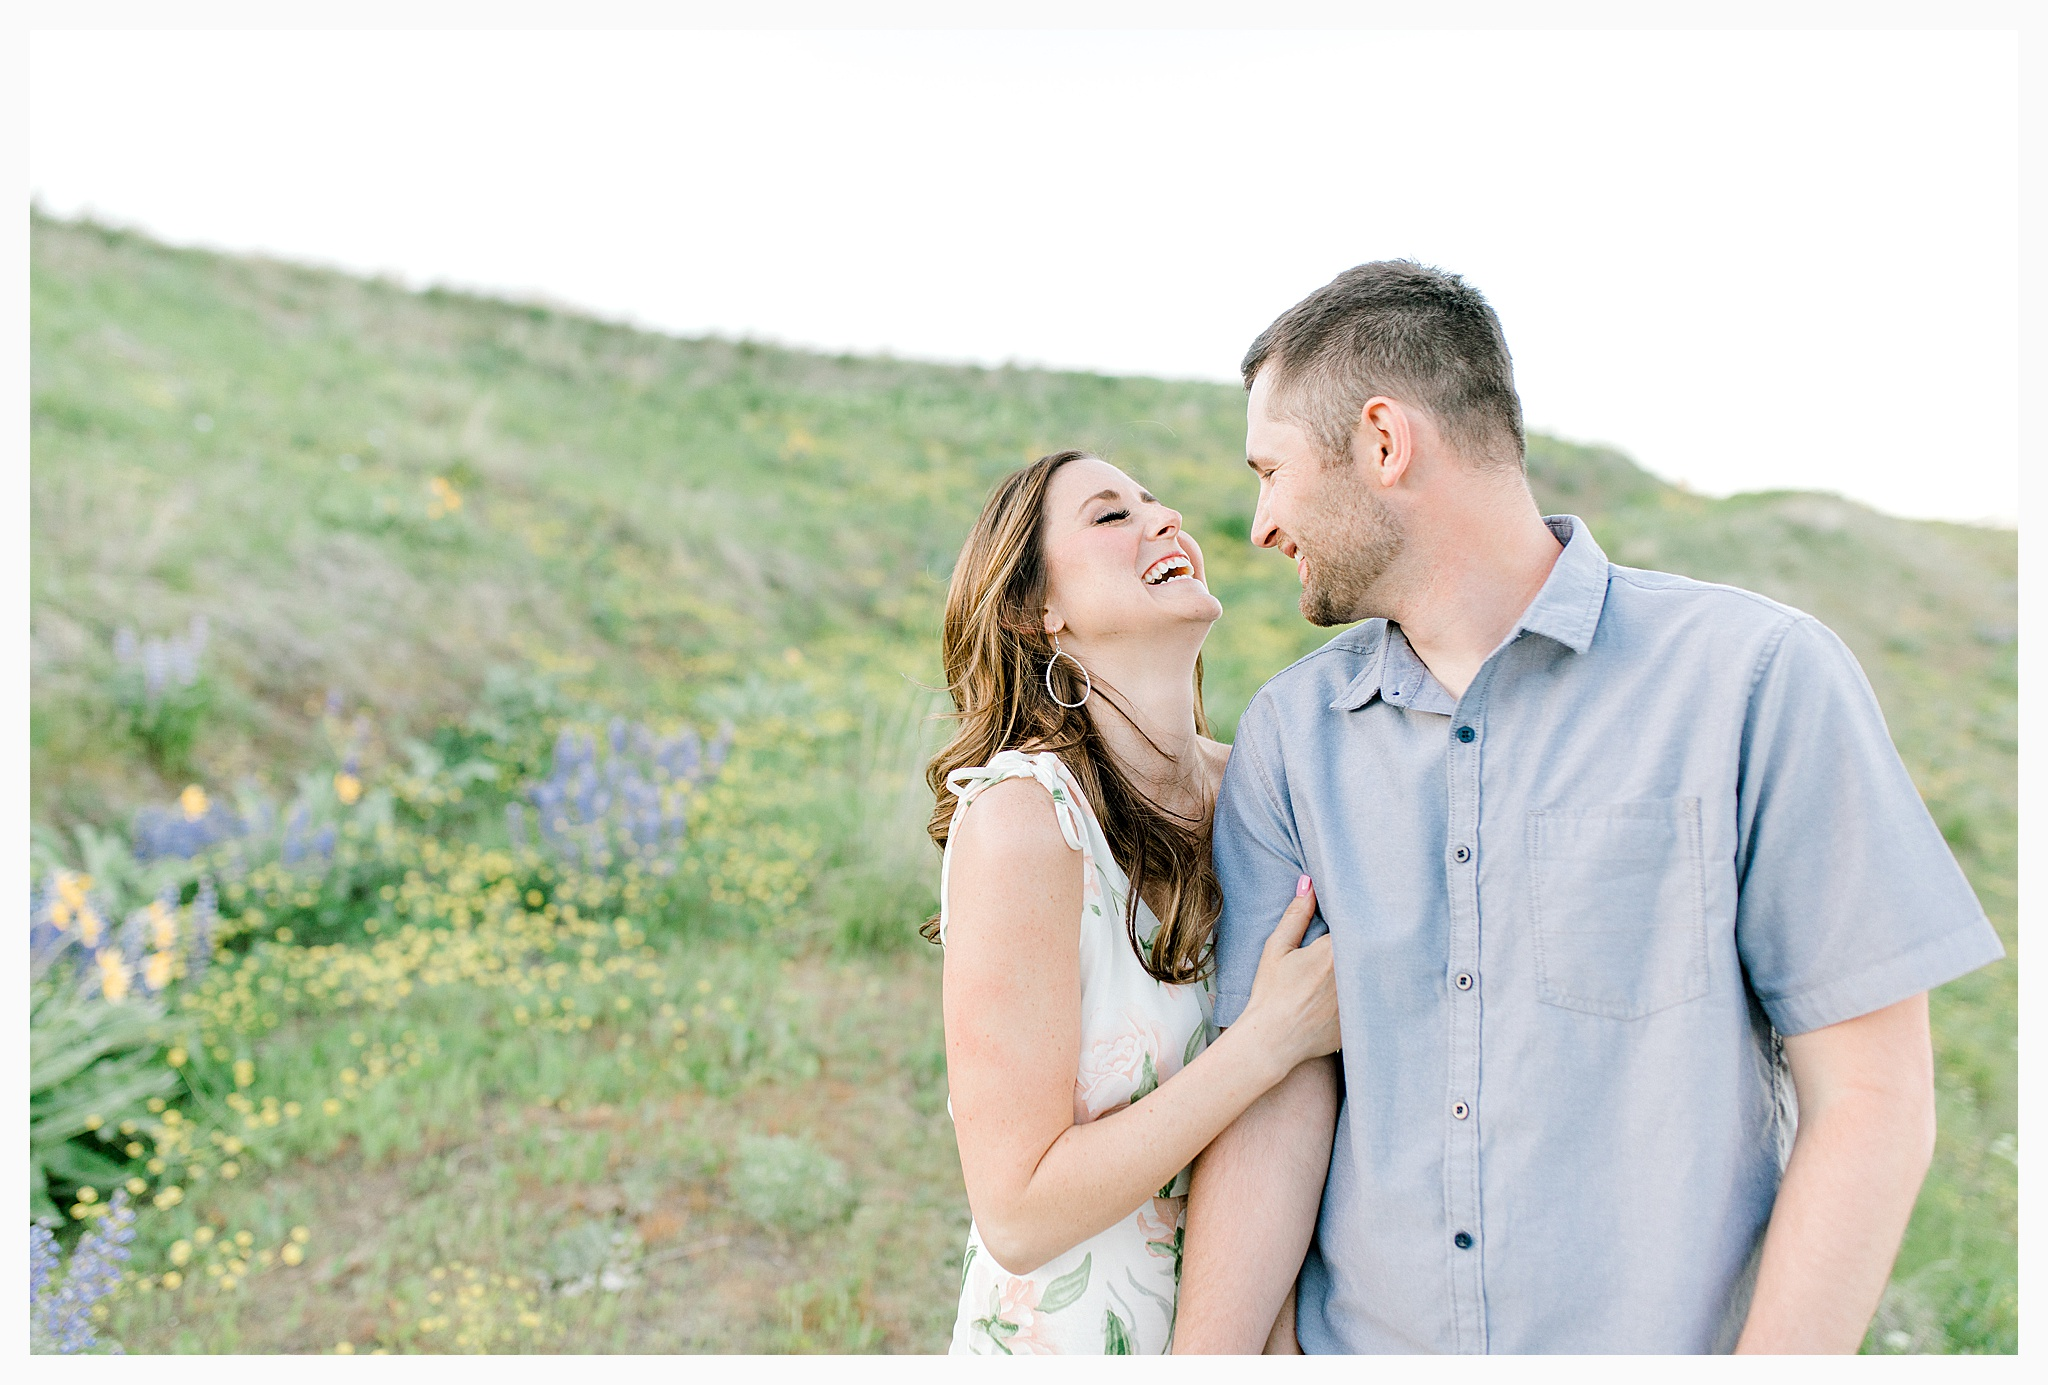 Engagement session amongst the wildflowers in Wenatchee, Washington | Engagement Session Outfit Inspiration for Wedding Photography with Emma Rose Company | Light and Airy PNW Photographer, Seattle Bride_0005.jpg